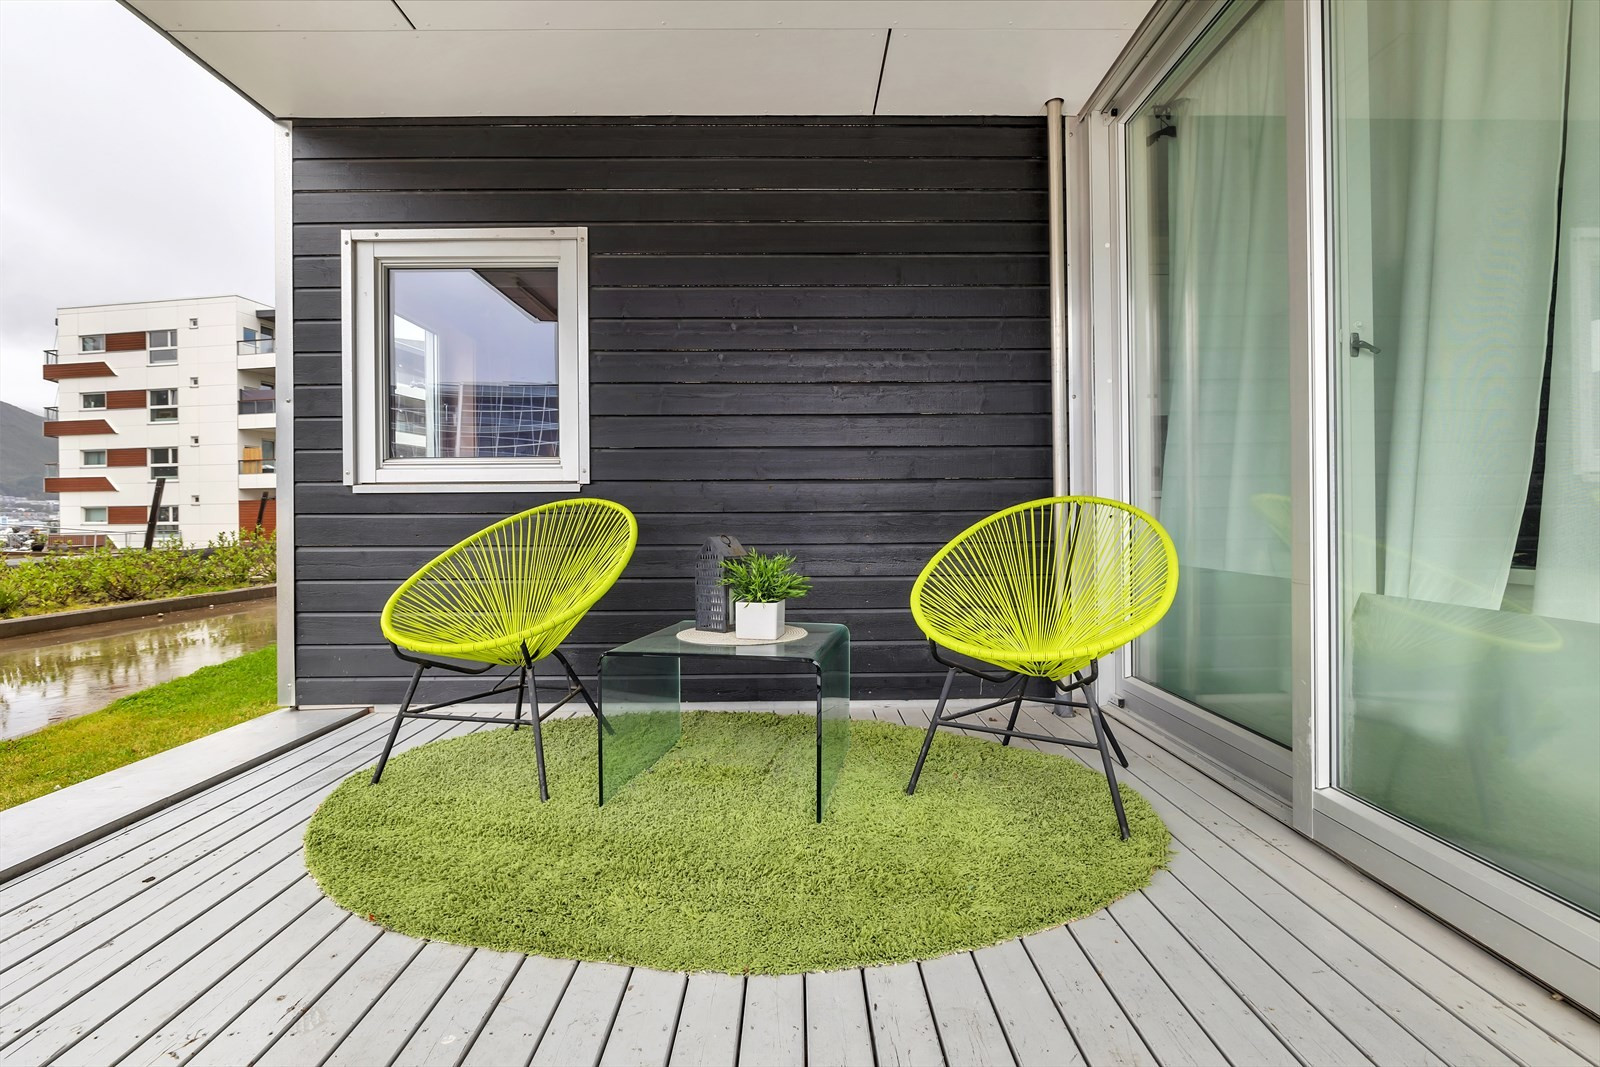 Lun, overbygget terrasse